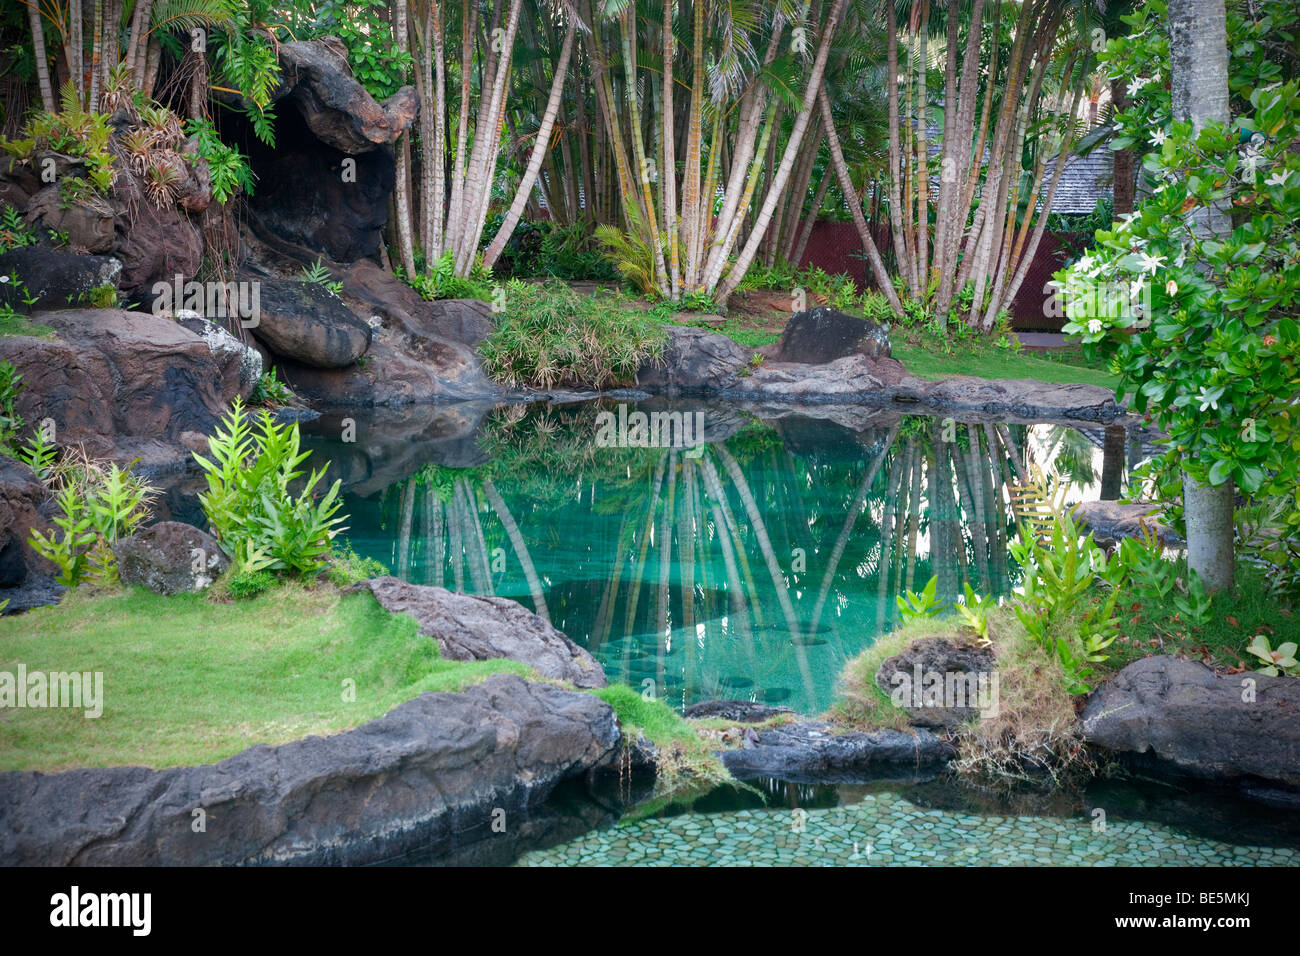 Pond And Garden At Na Aina Kai Botanical Gardens Kauai Hawaii Stock Photo Royalty Free Image